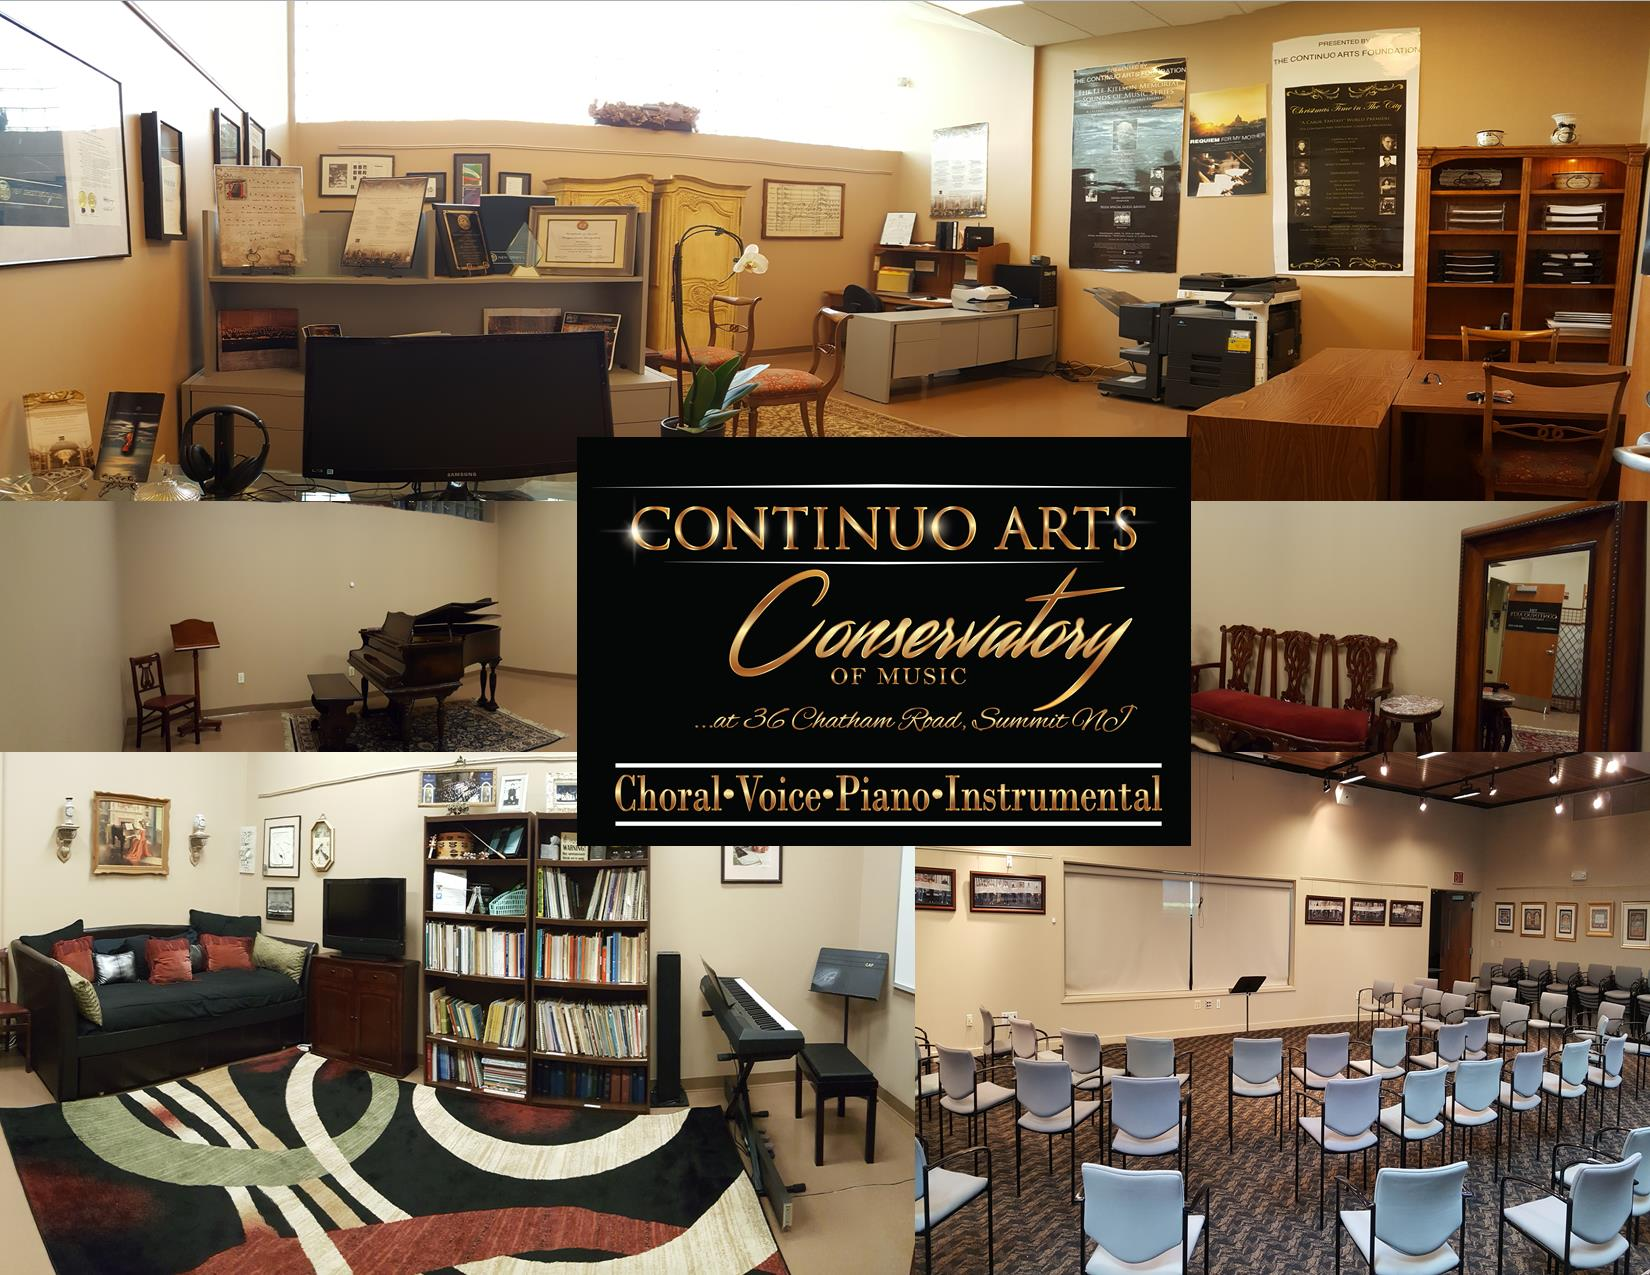 Continuo Arts Conservatory